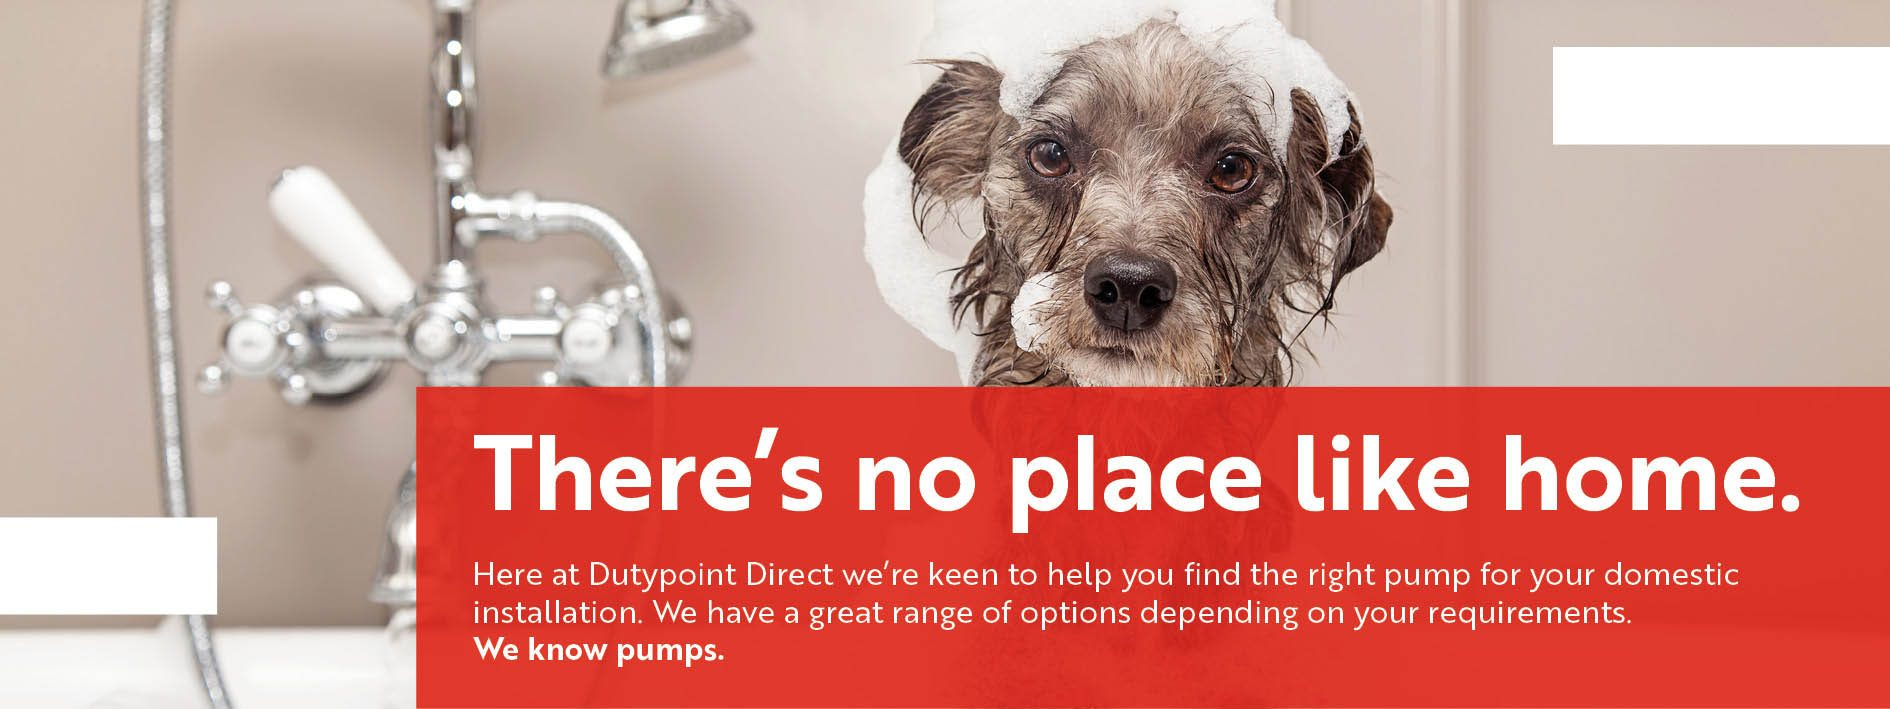 We're keen to help you find the right pump for your domestic installation